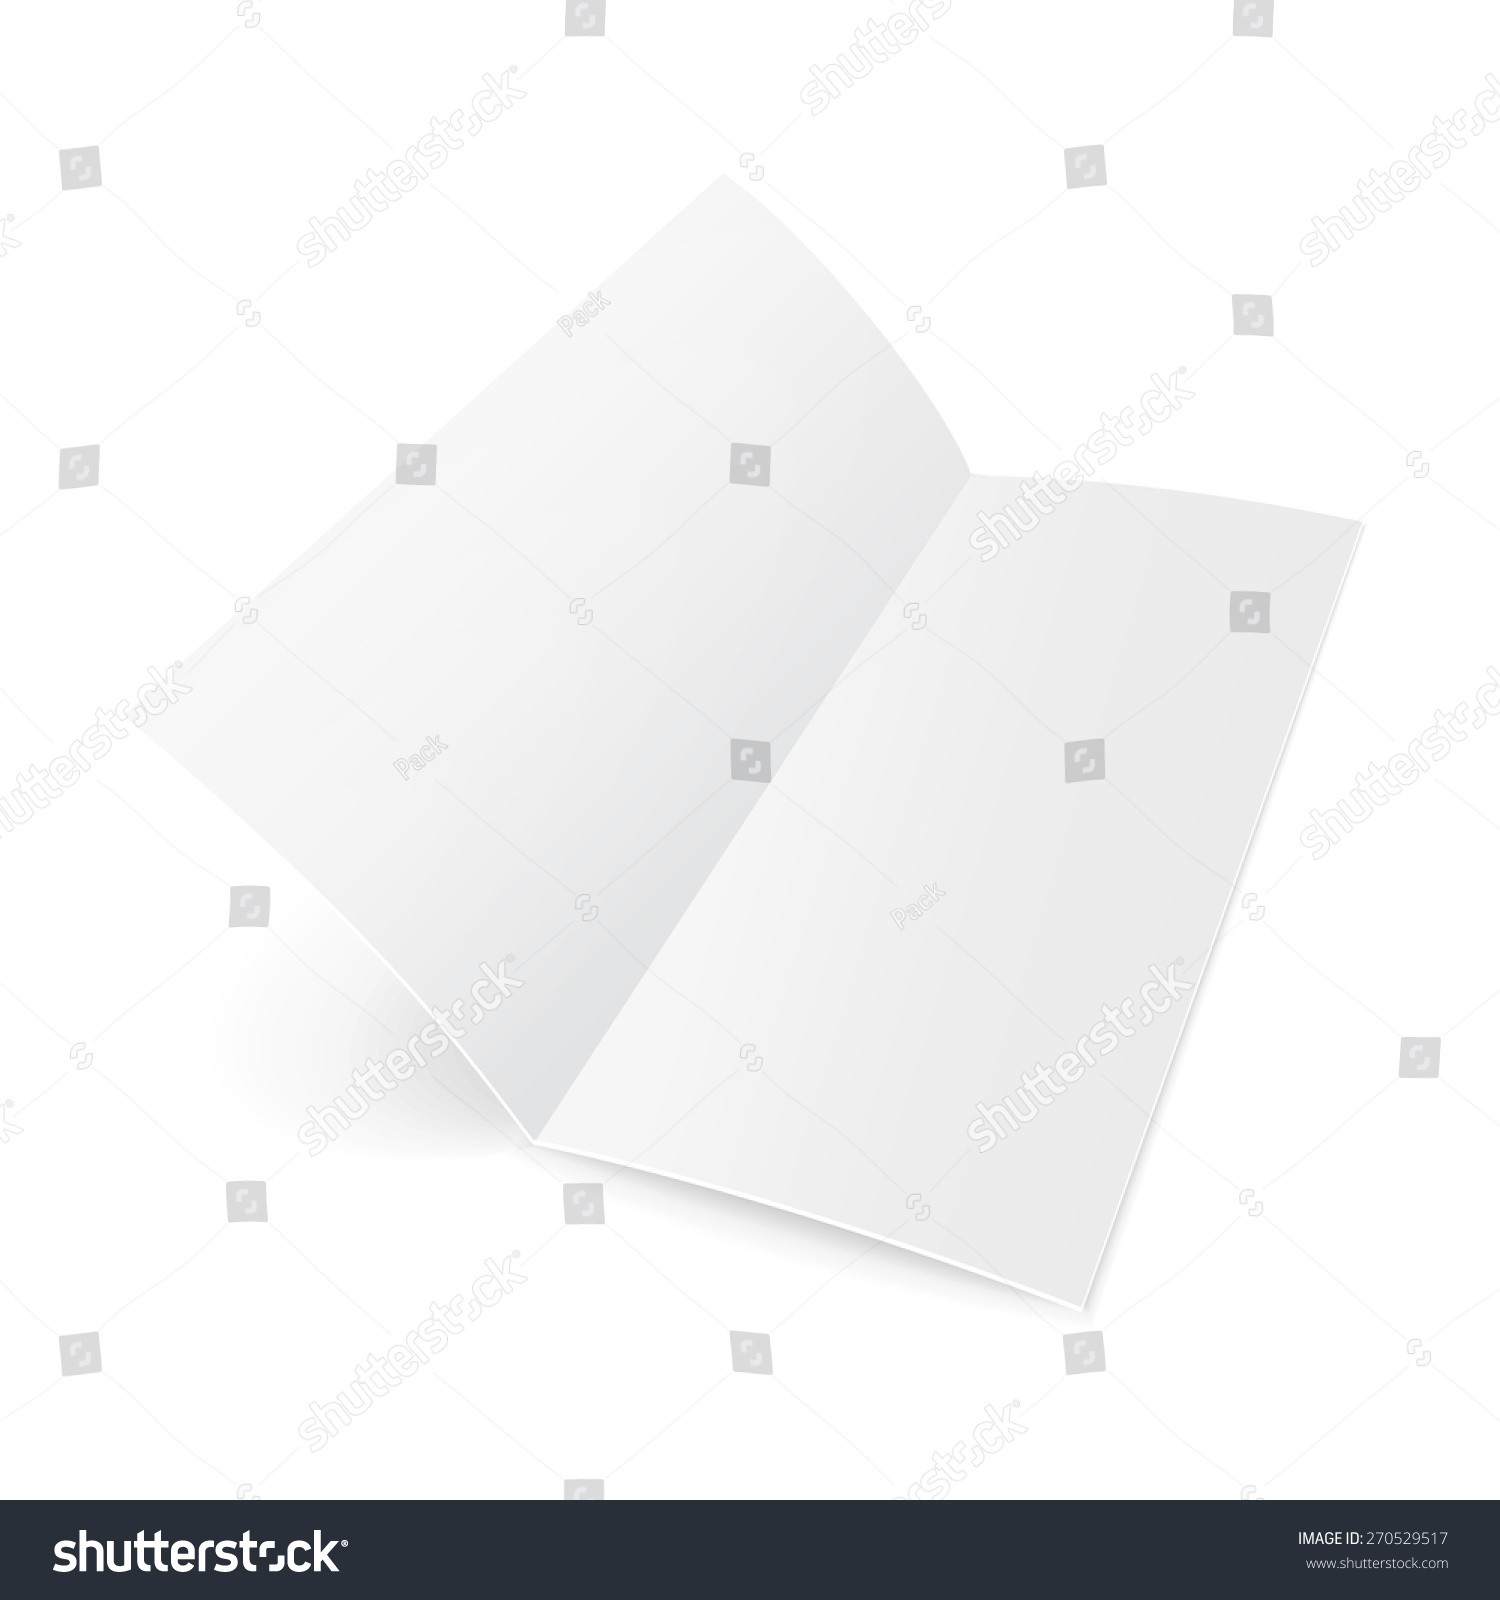 paper brochure holder template - blank twofold trifold folded sheet paper stock vector